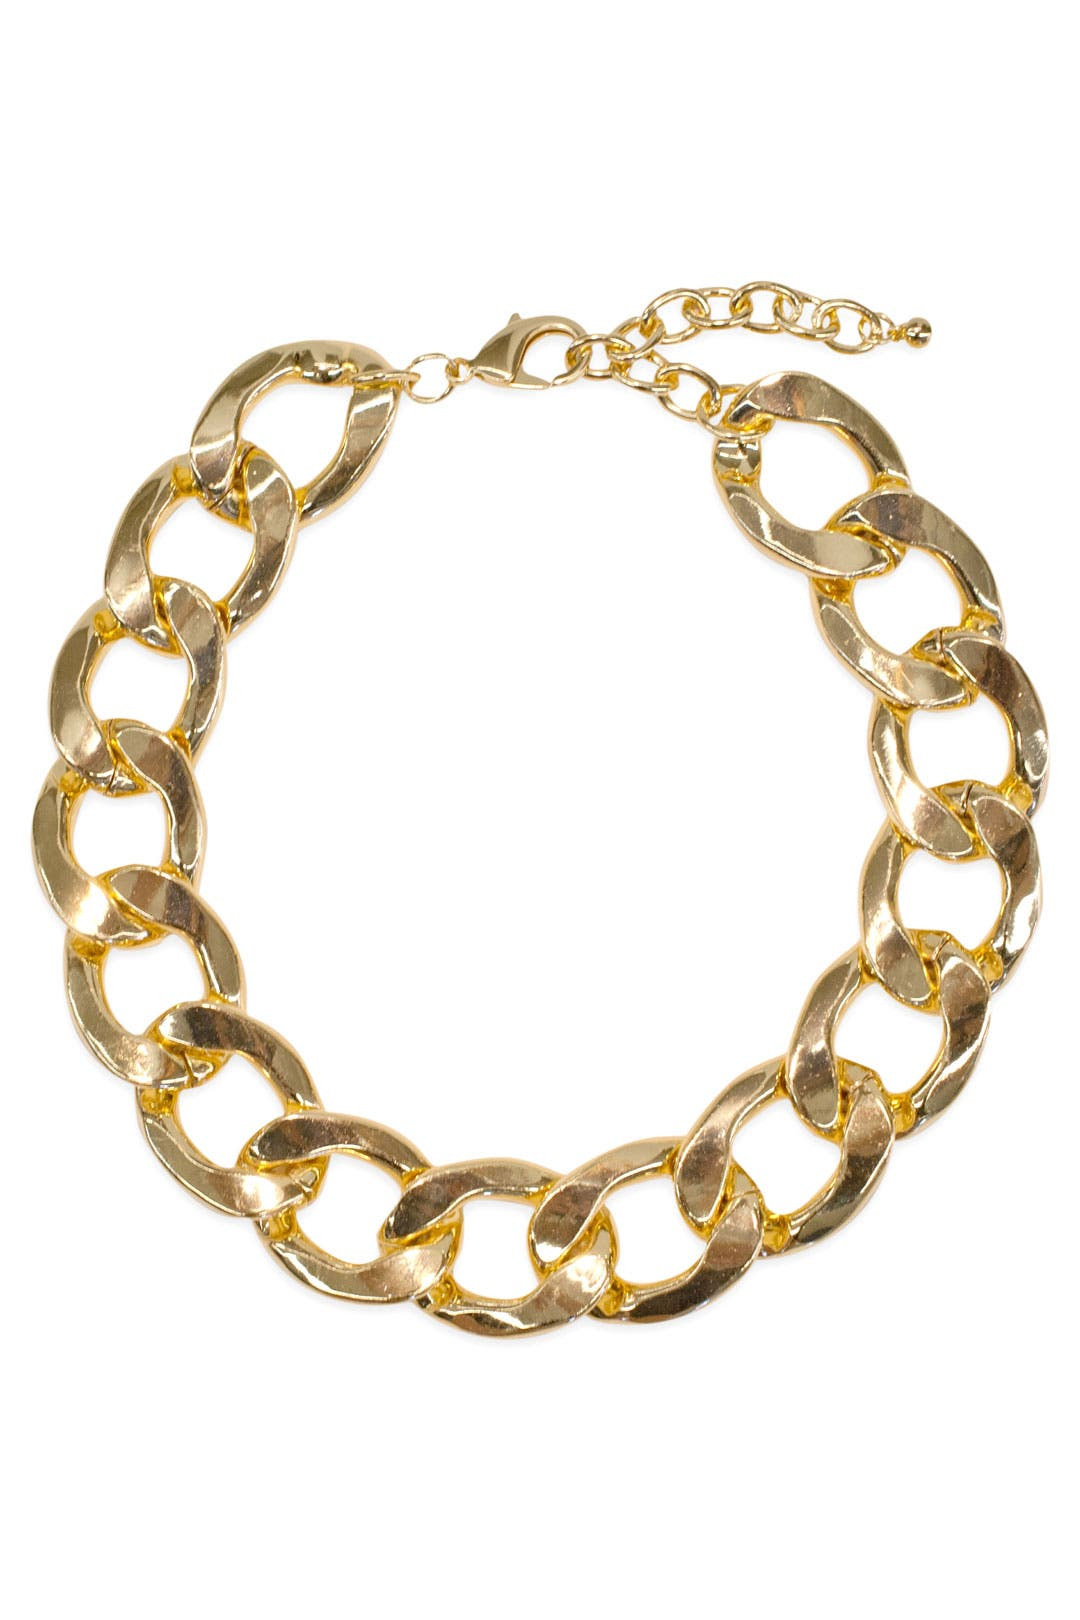 En Vogue Necklace by RJ Graziano